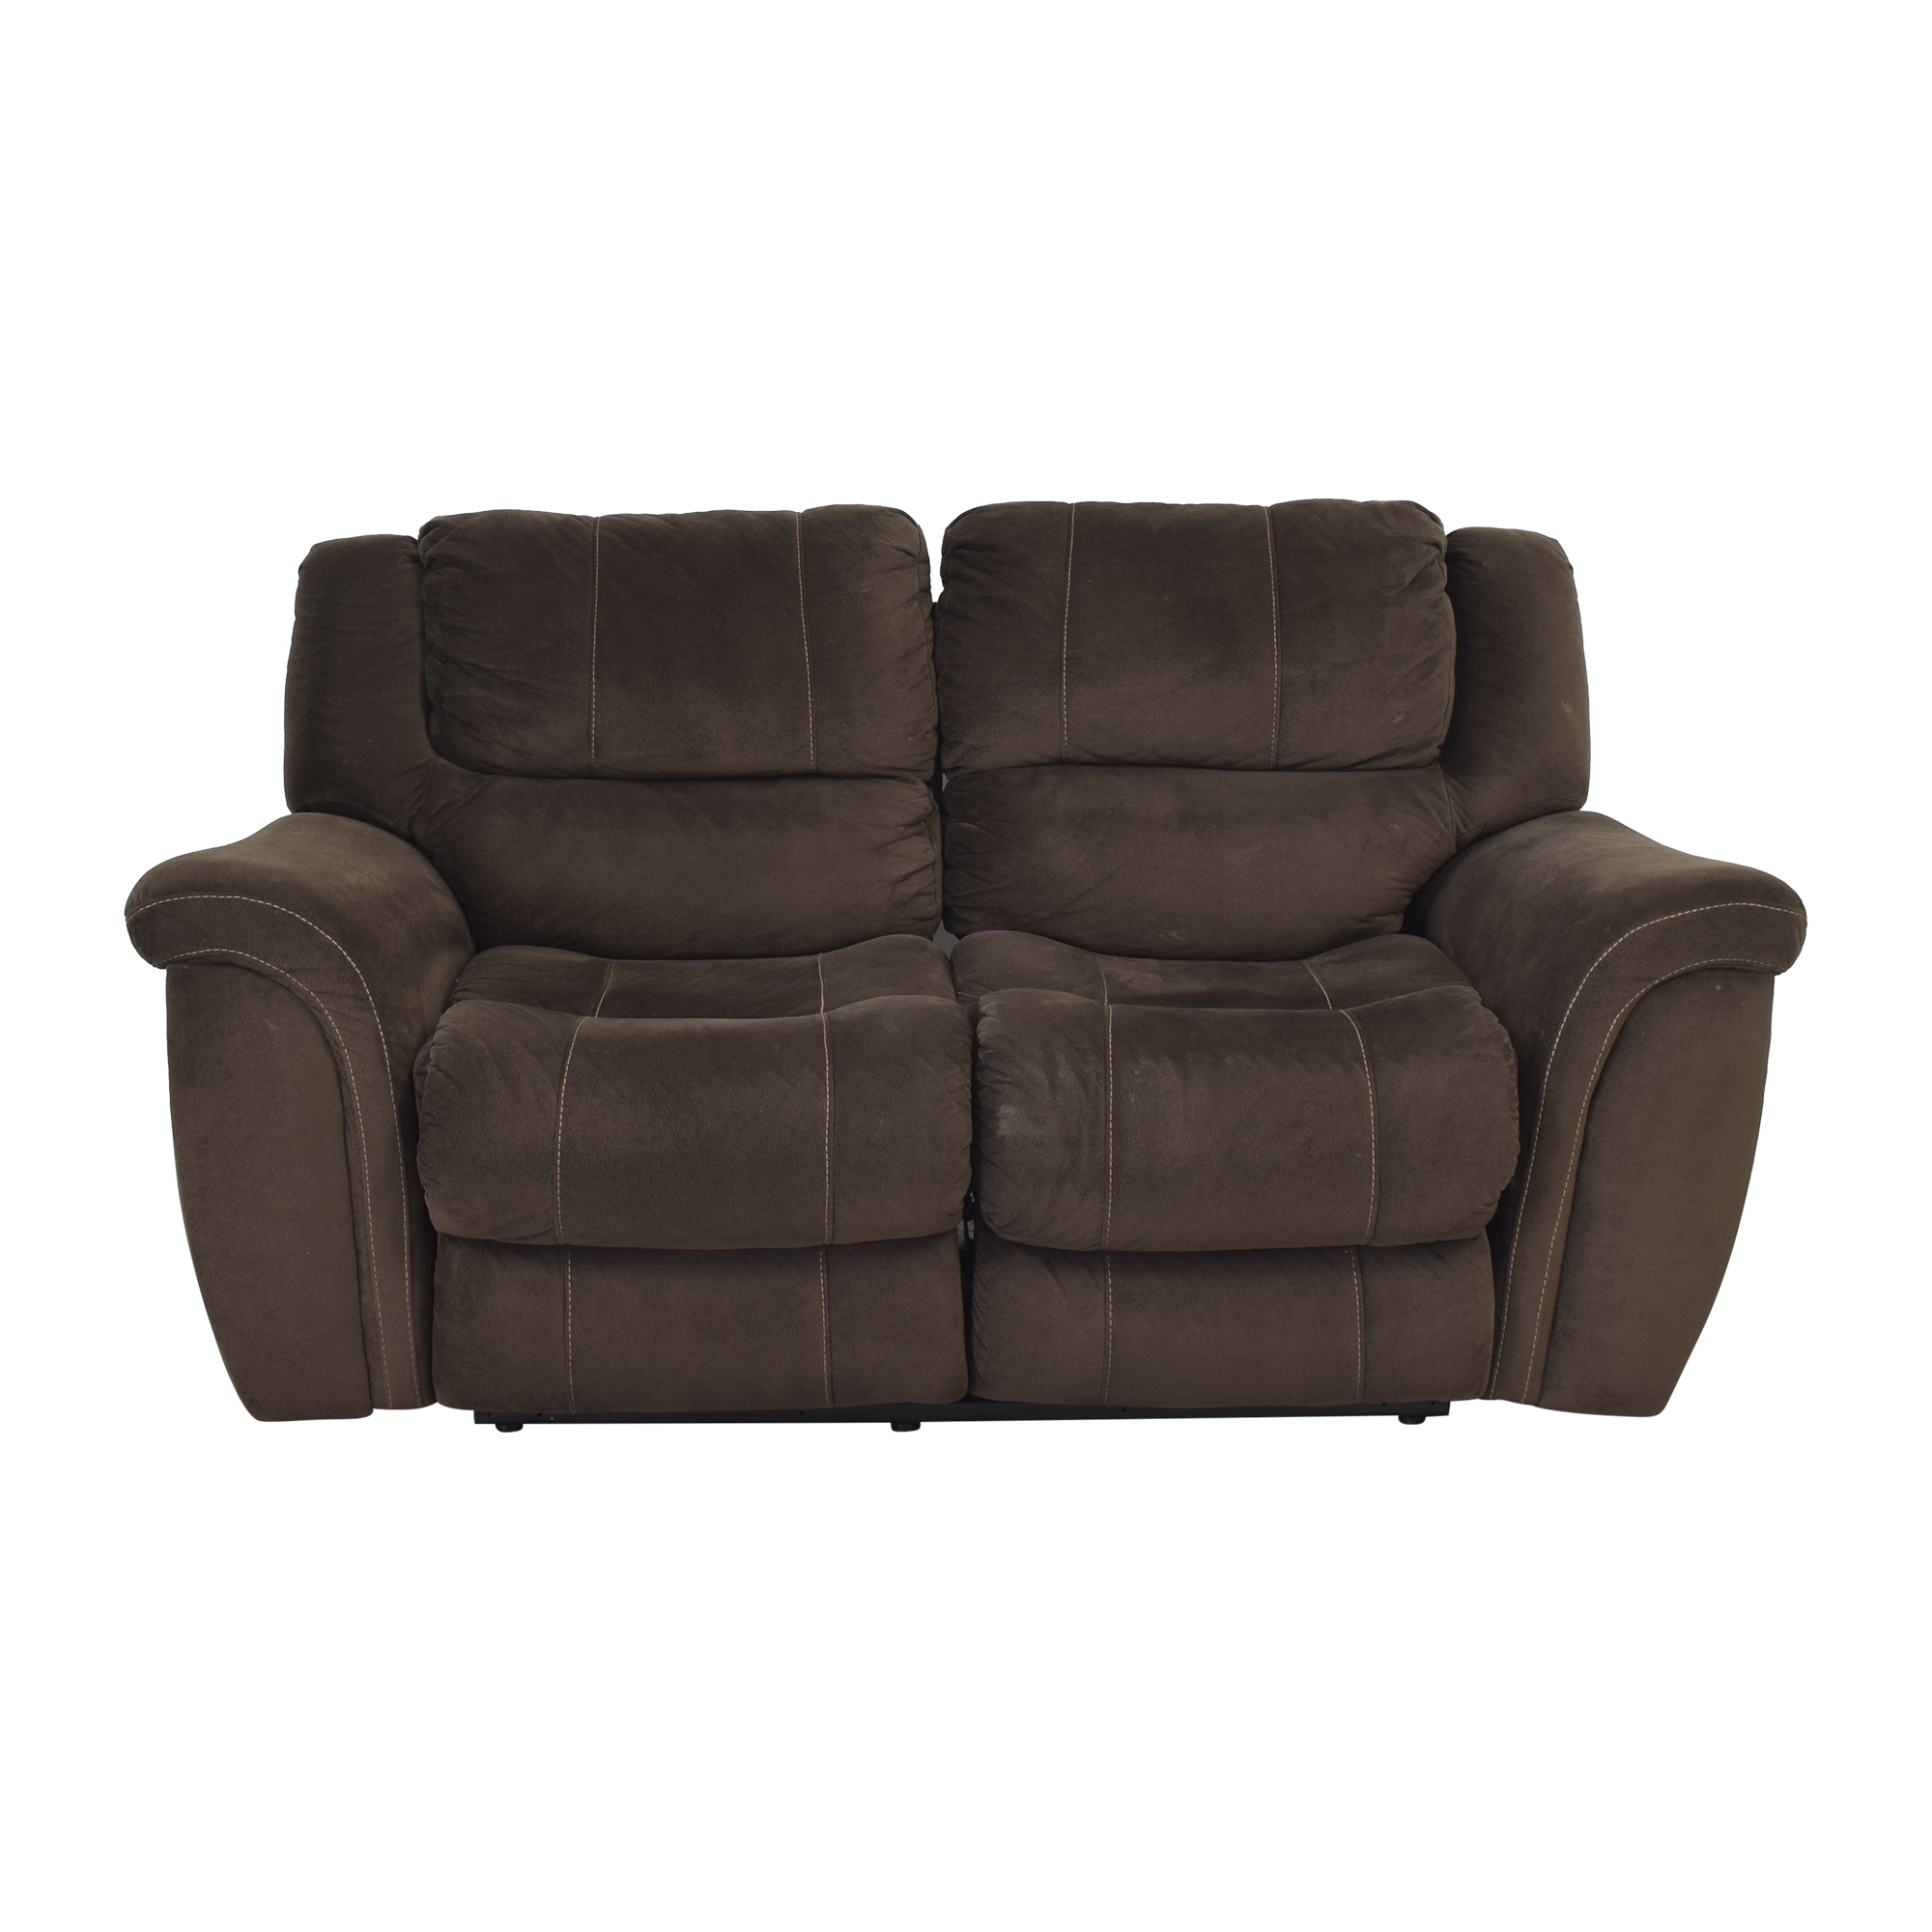 Raymour & Flanigan Raymour & Flanigan Double Recliner Loveseat price